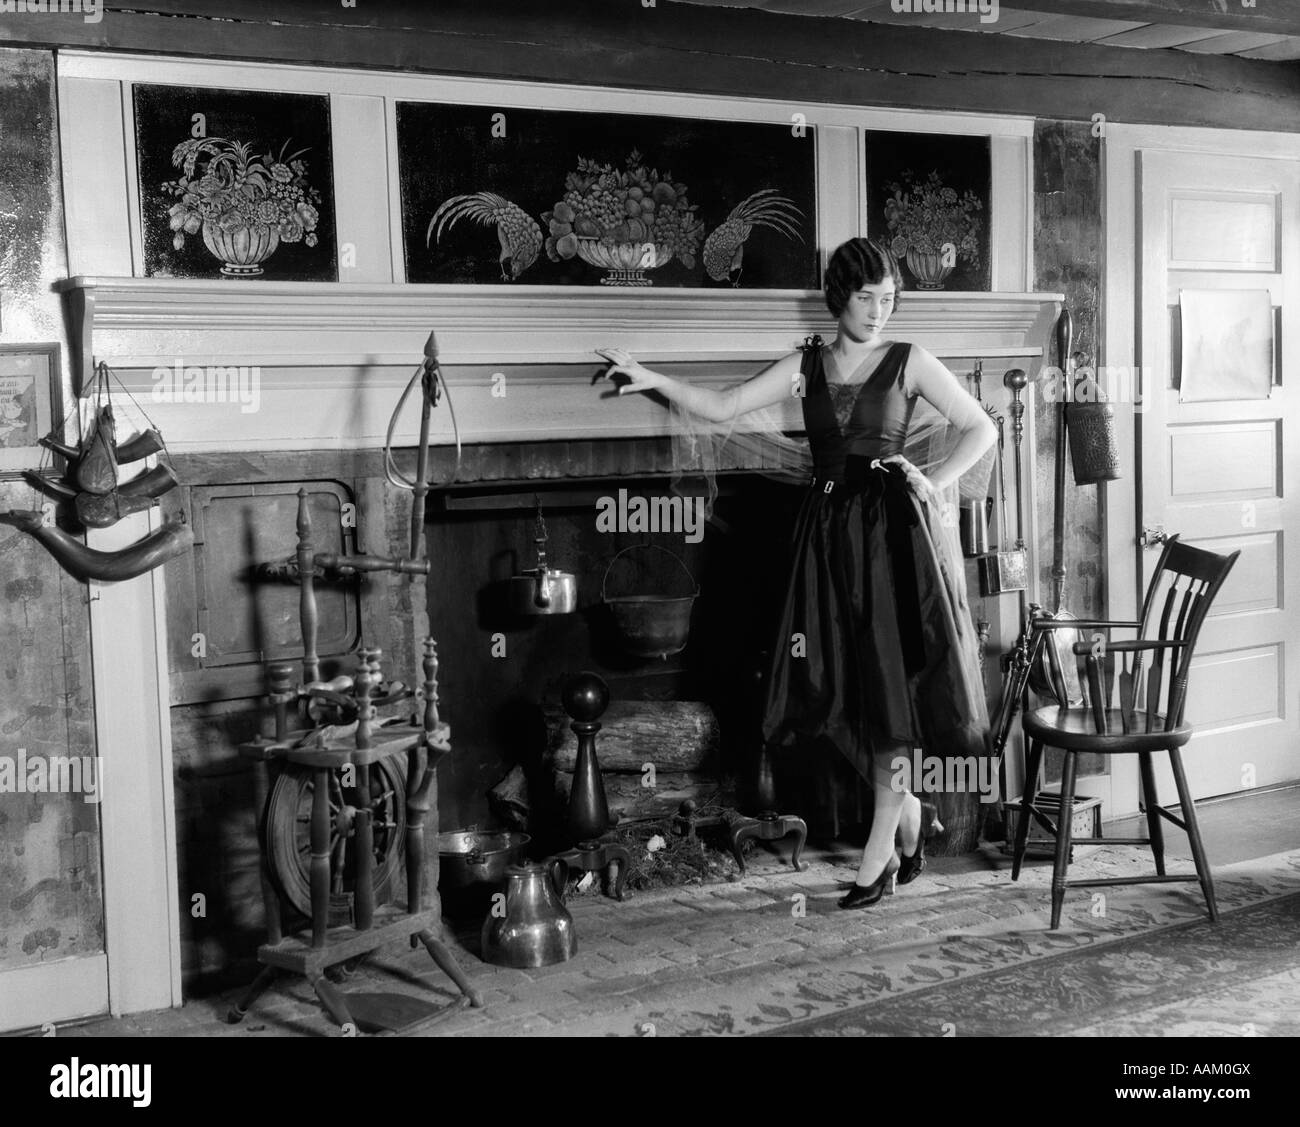 1920s WOMAN IN COCKTAIL DRESS STANDING IN FRONT OF LARGE FIREPLACE - Stock Image